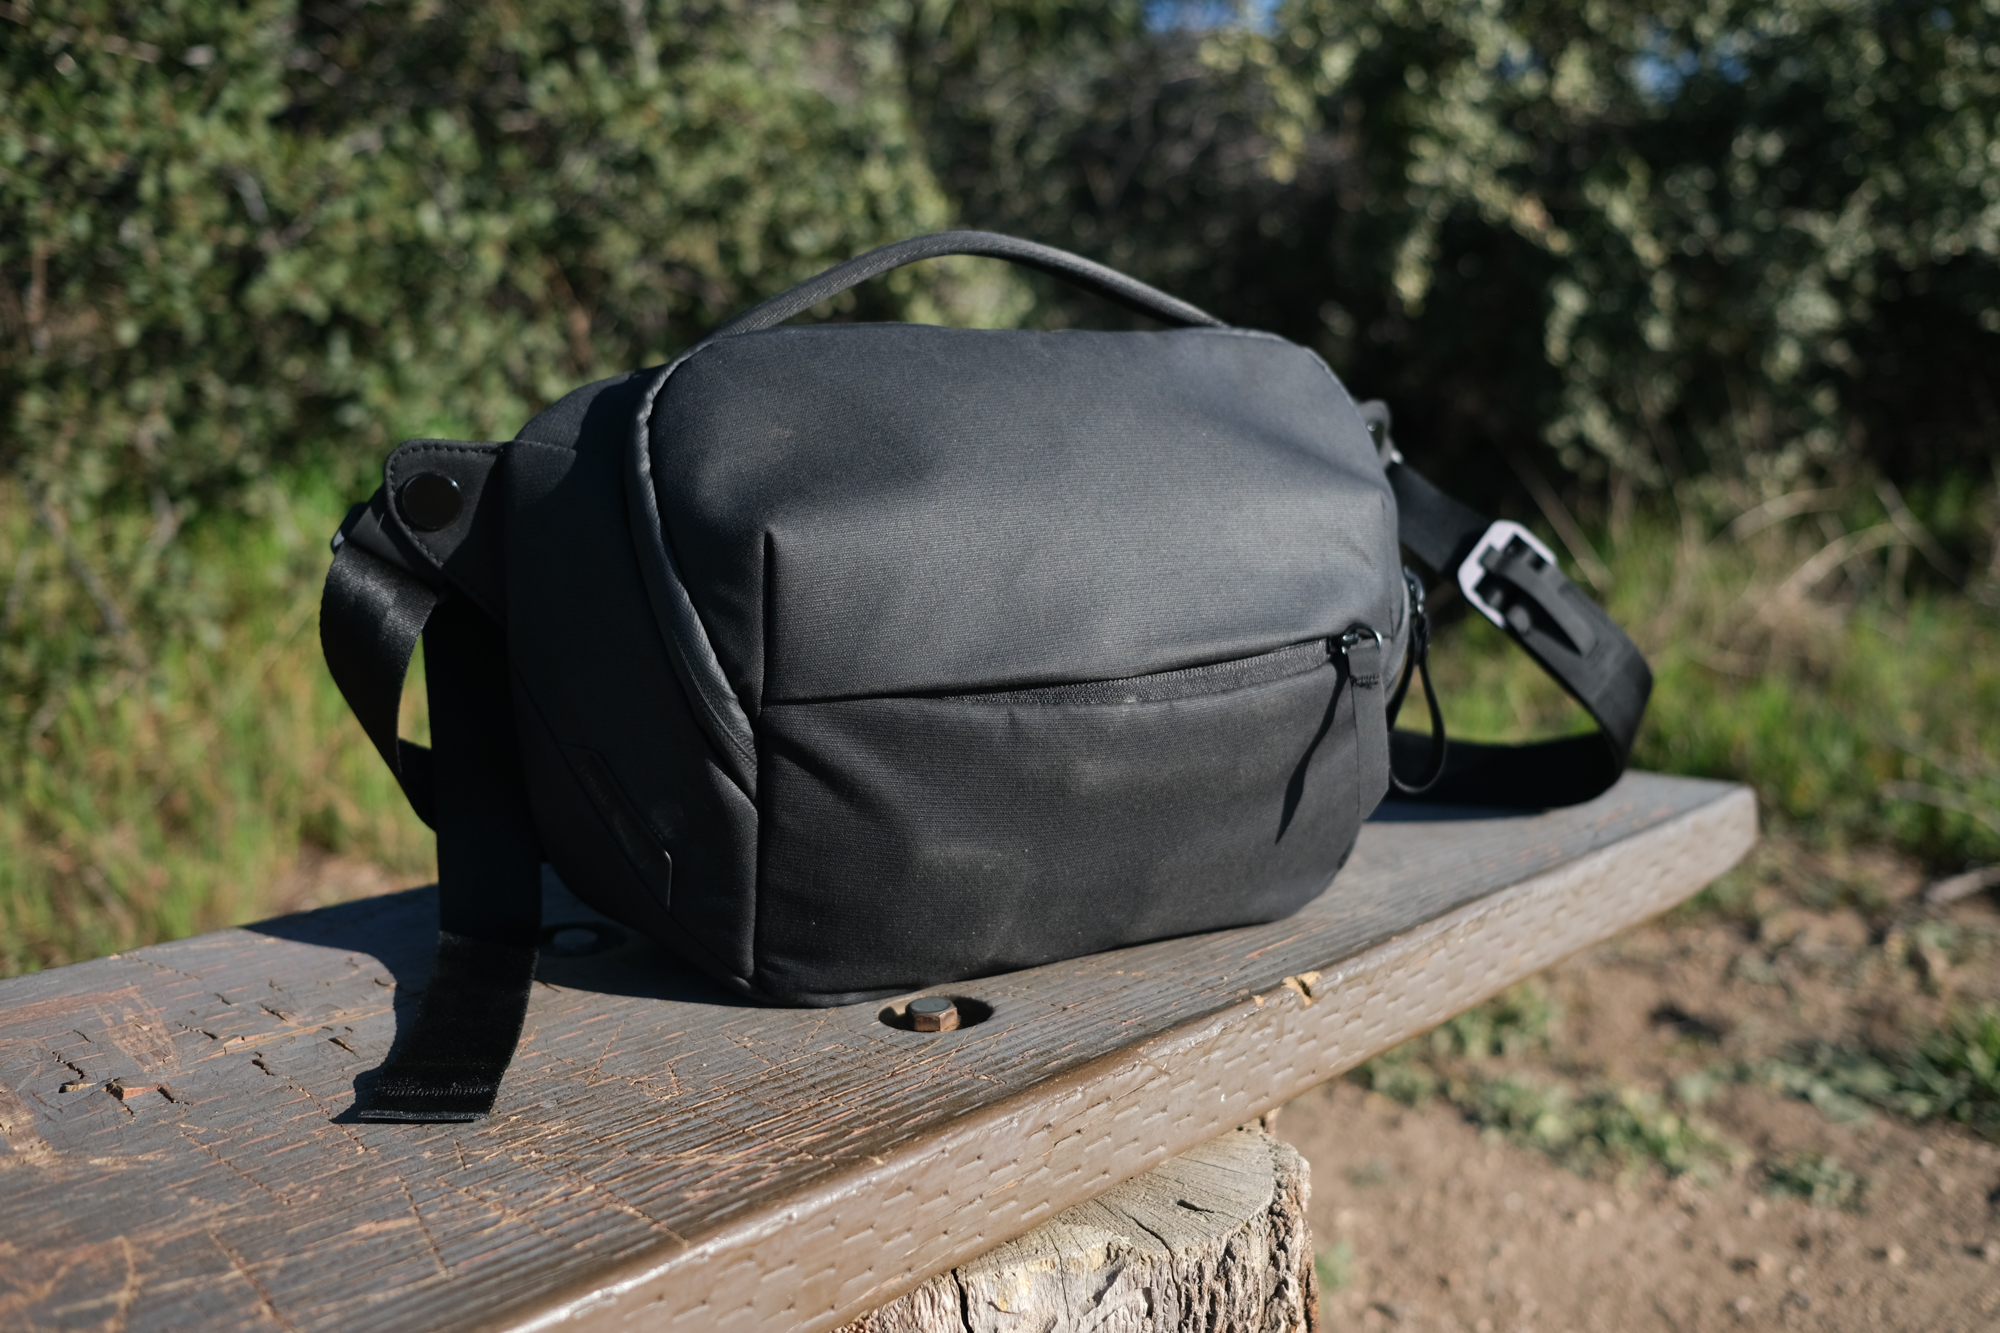 Gear Review: Peak Design Everyday Sling Camera Bag